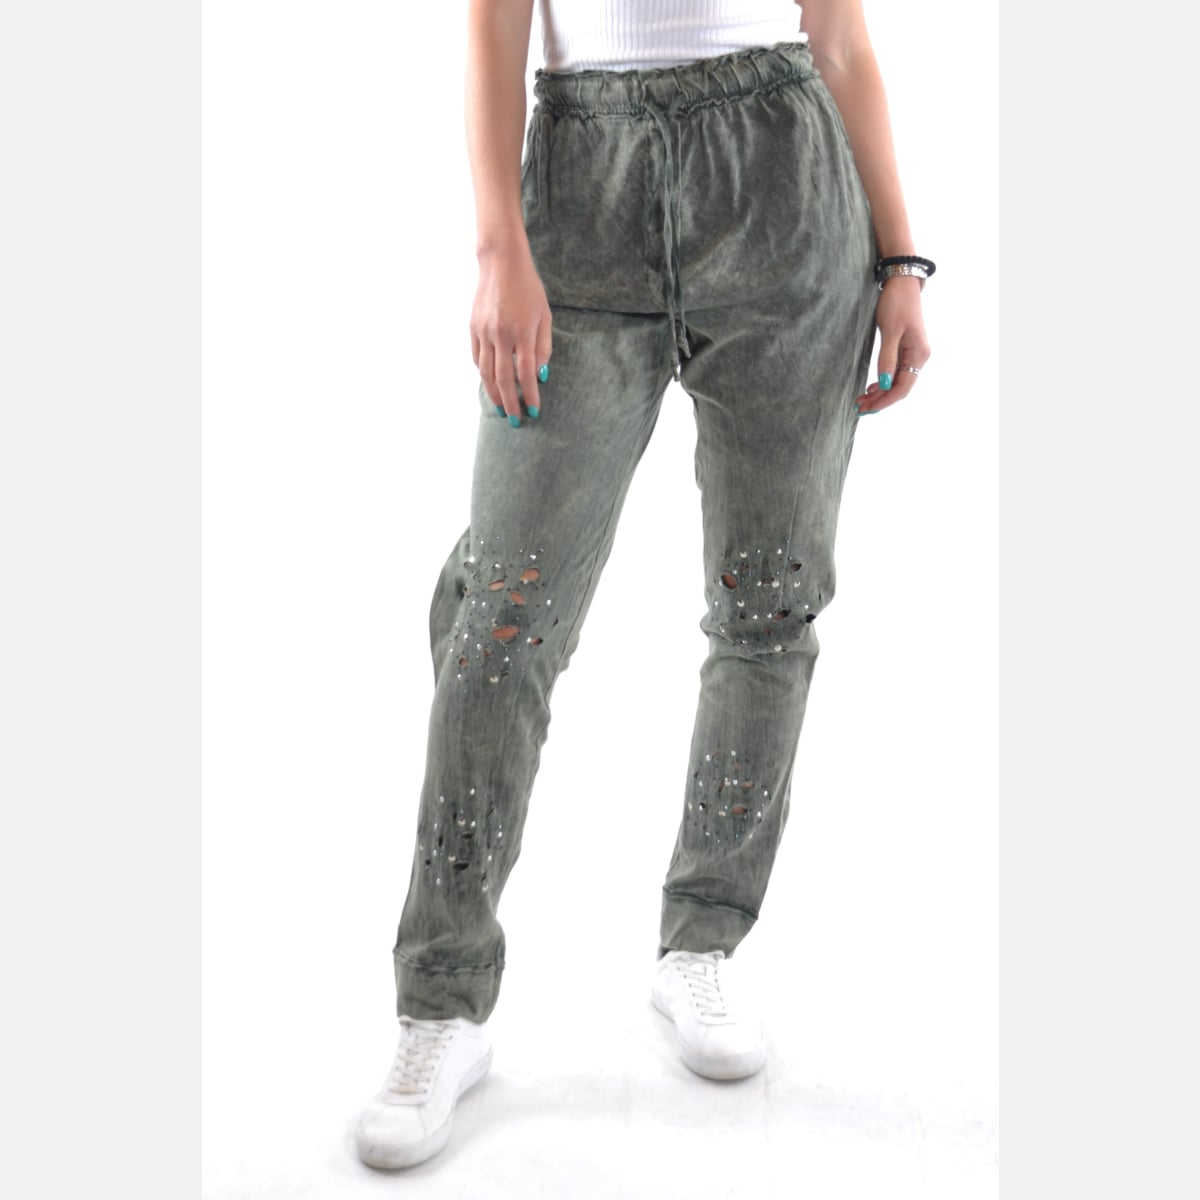 Green Stone Washed Shinny Stone Cotton Women Jogger Pants Trousers S-Ponder